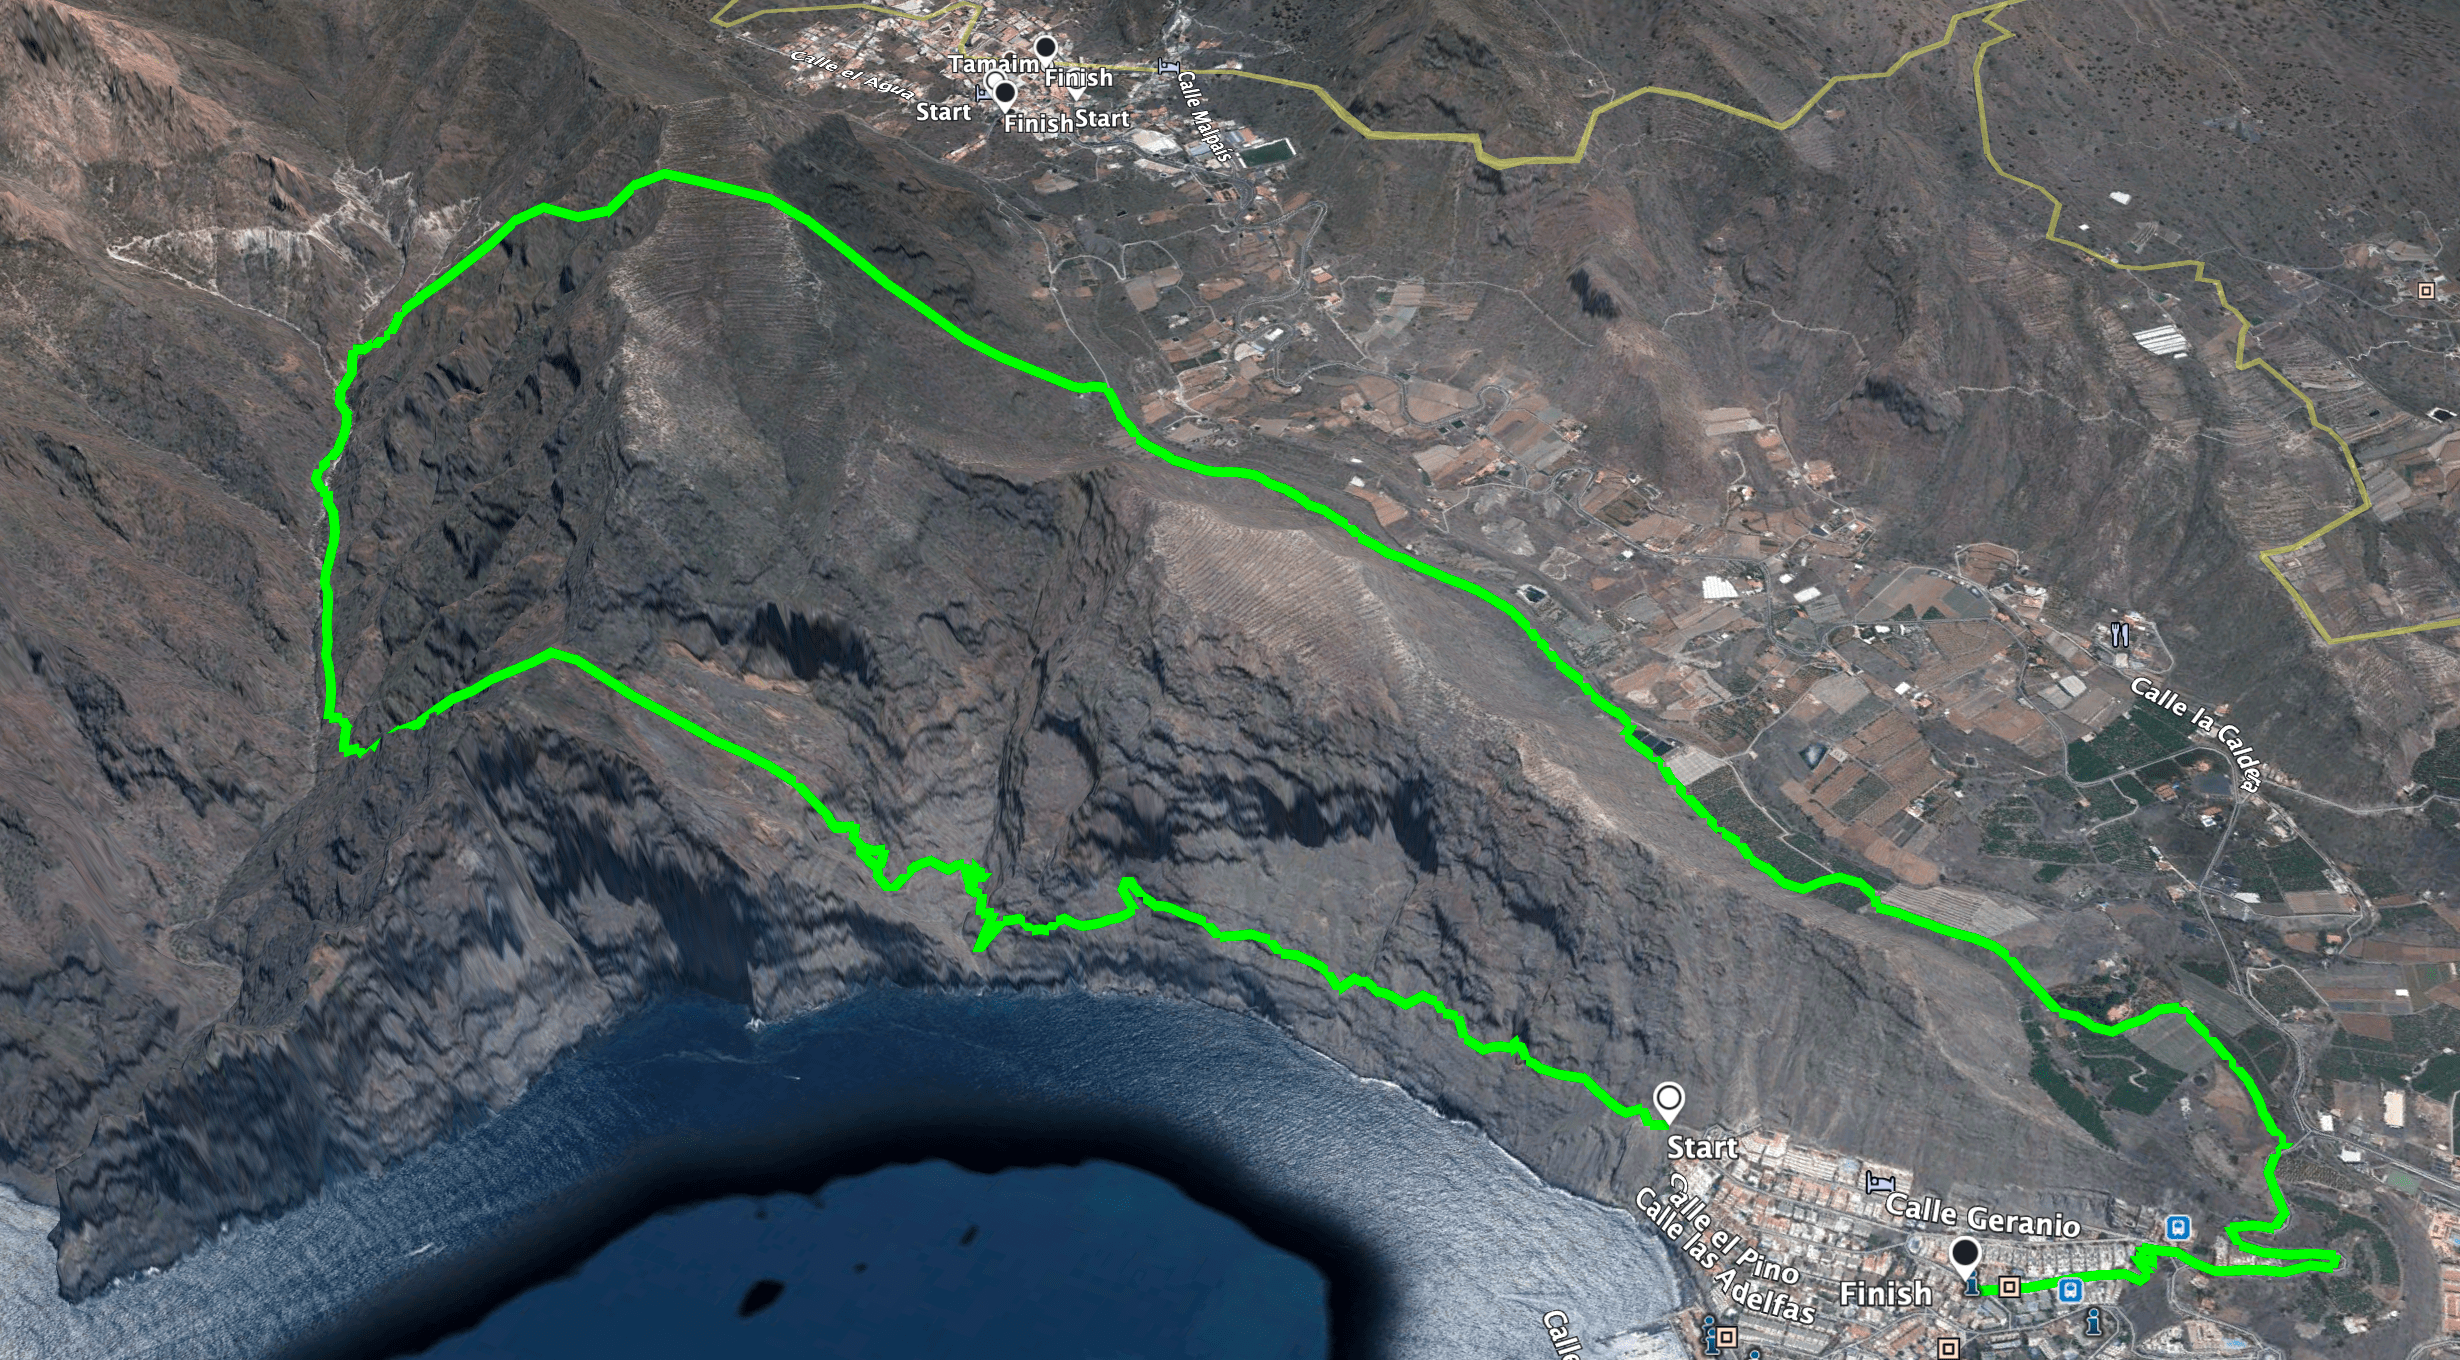 track of the hike double tunnel trip